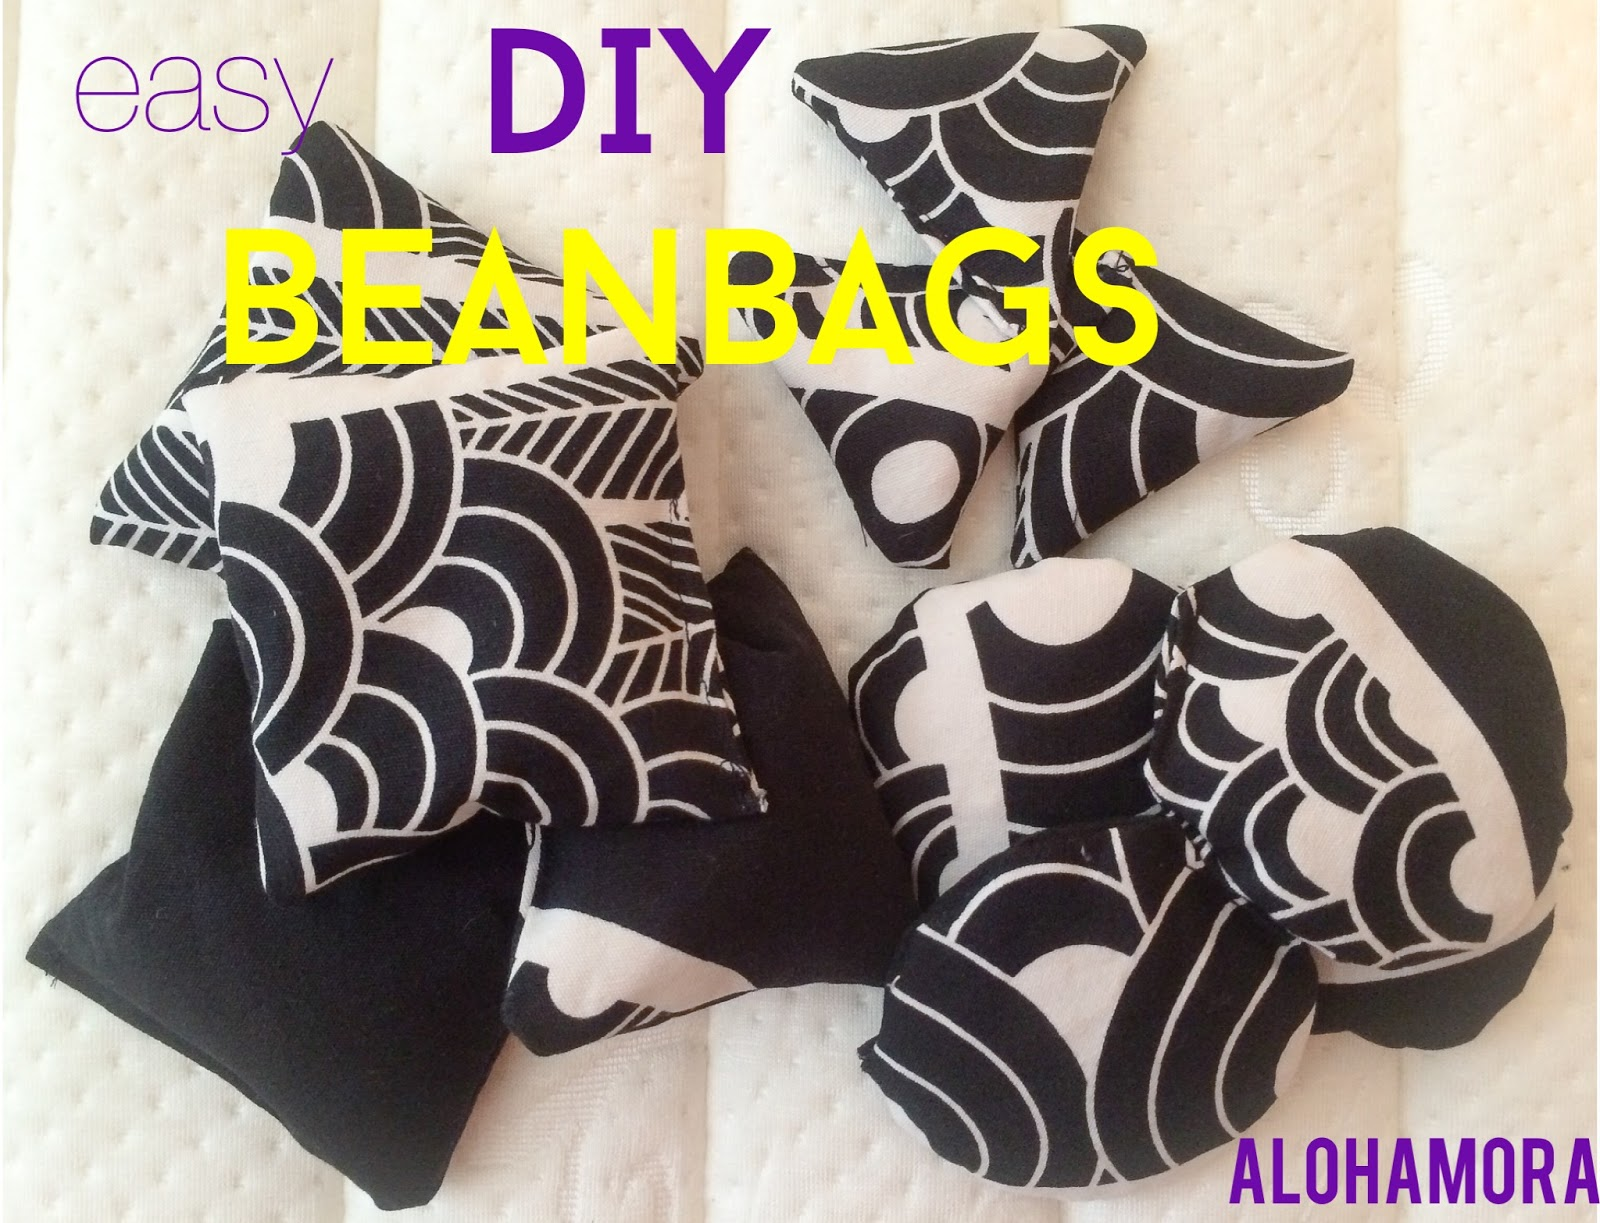 Easy DIY Homemade Beanbags tutorial with a free printable pattern for square, circle, and triangle beanbags.  Easy to make, cheap (dry beans and scrap fabric are your only costs), and the kids LOVE playing with them.  Easy sewing pattern for beginners.  Alohamora Open a Book http://www.alohamoraopenabook.blogspot.com/